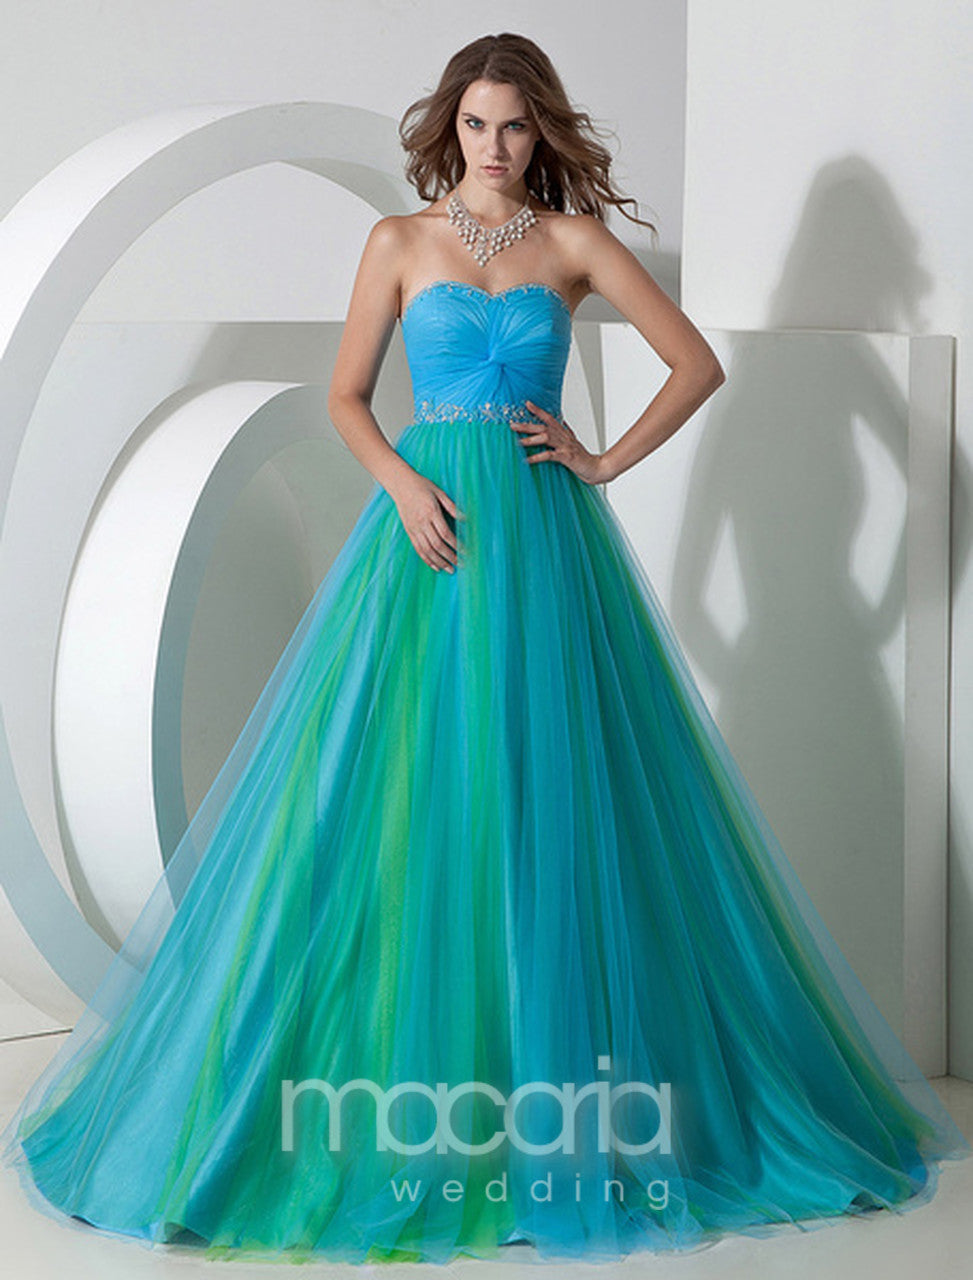 Evening Dresses - Two-Tone Ruched Tulle Satin Dress | Macaria Wedding